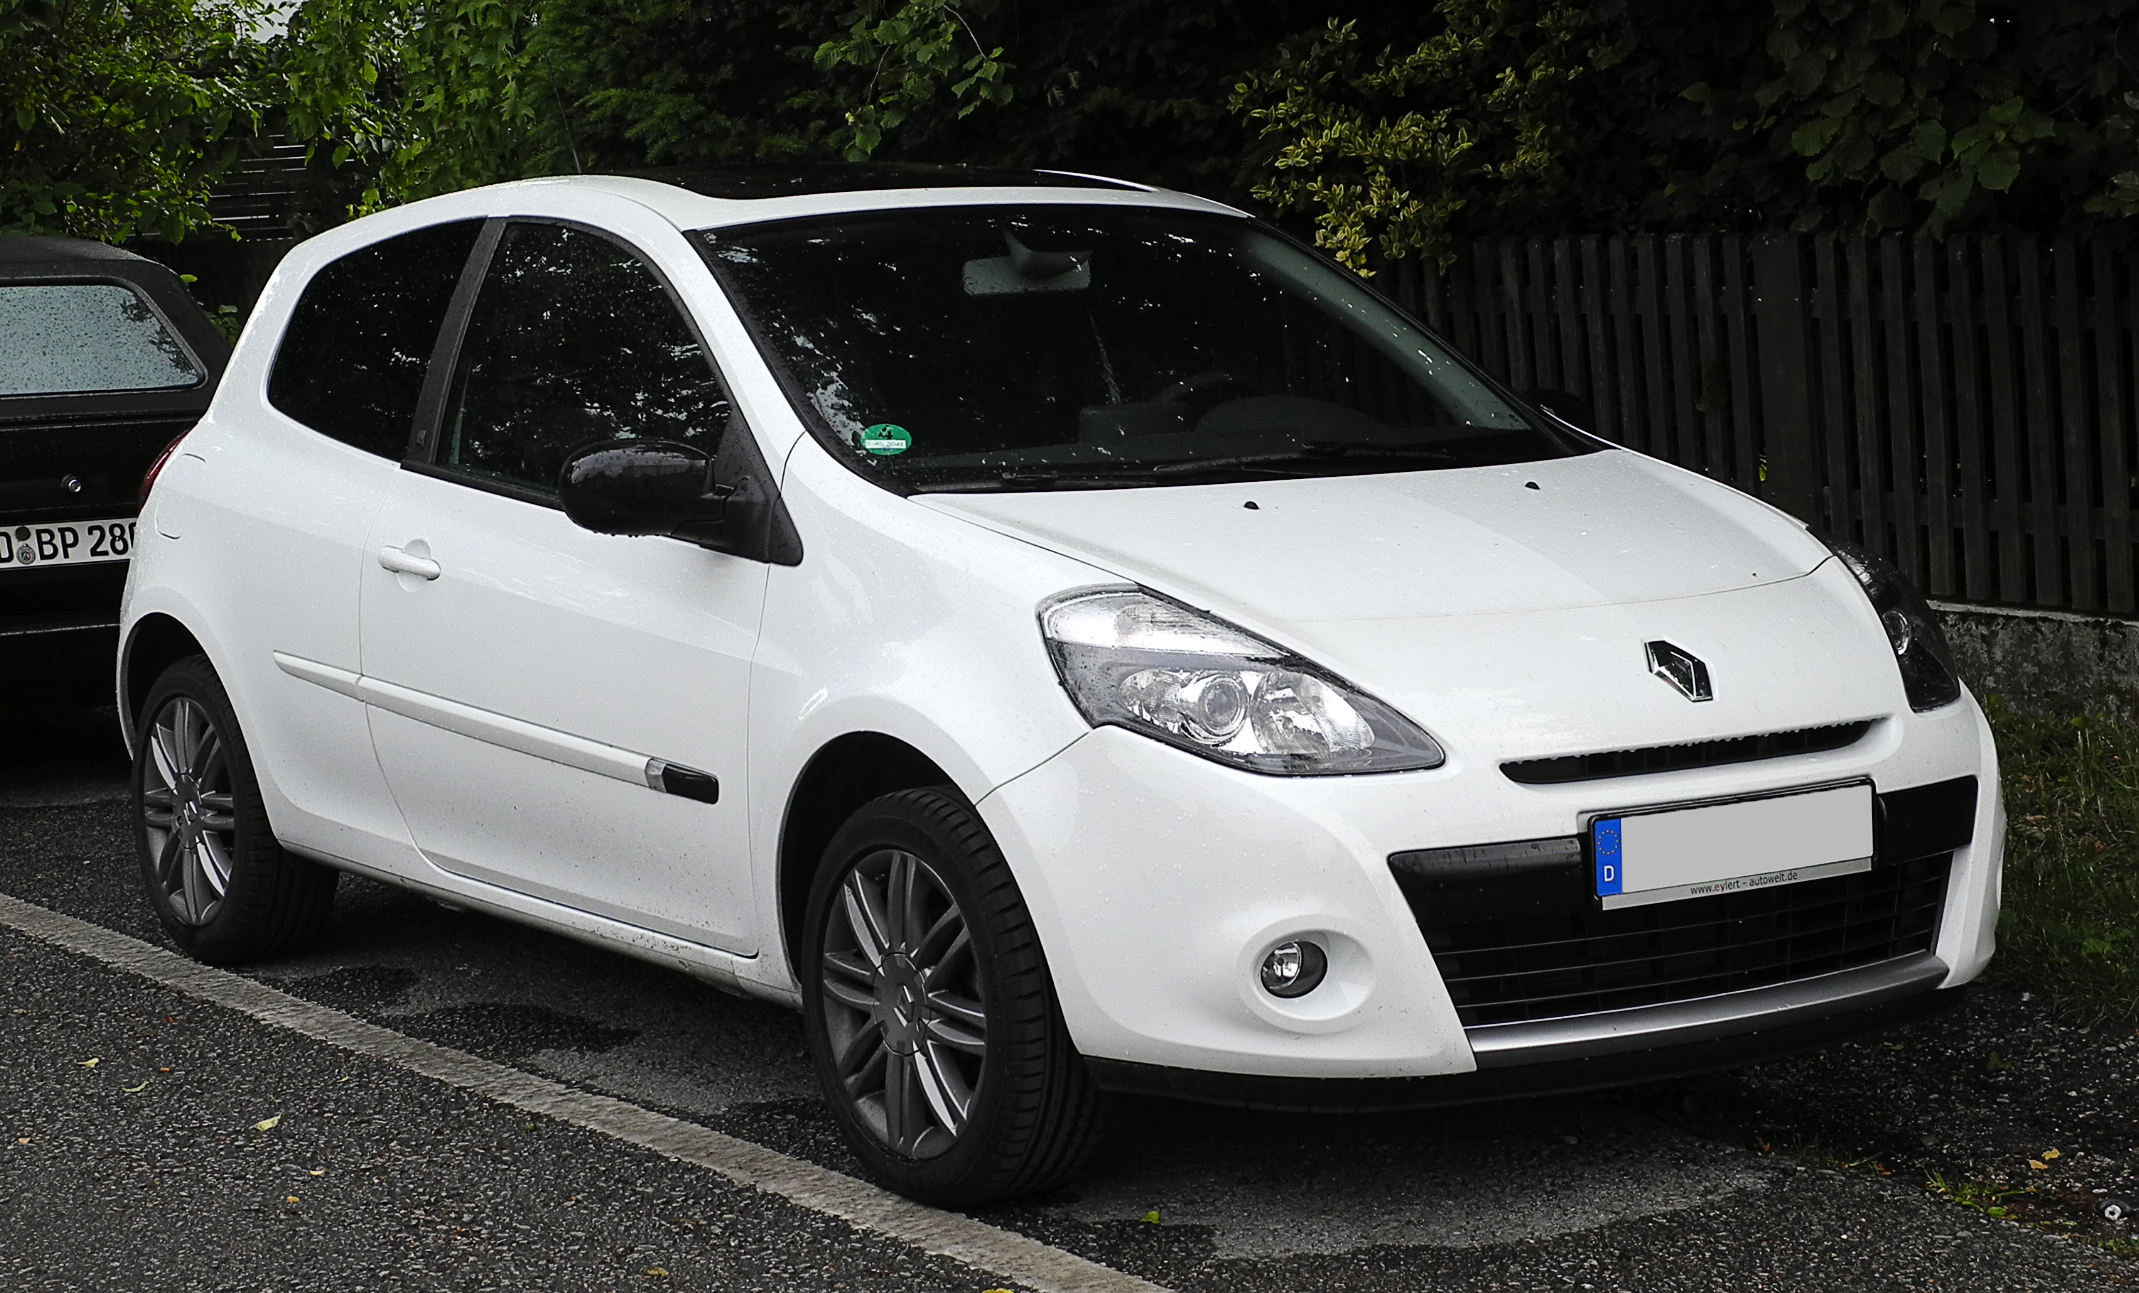 fichier renault clio 20th iii facelift frontansicht 11 juni 2011 w wikip dia. Black Bedroom Furniture Sets. Home Design Ideas